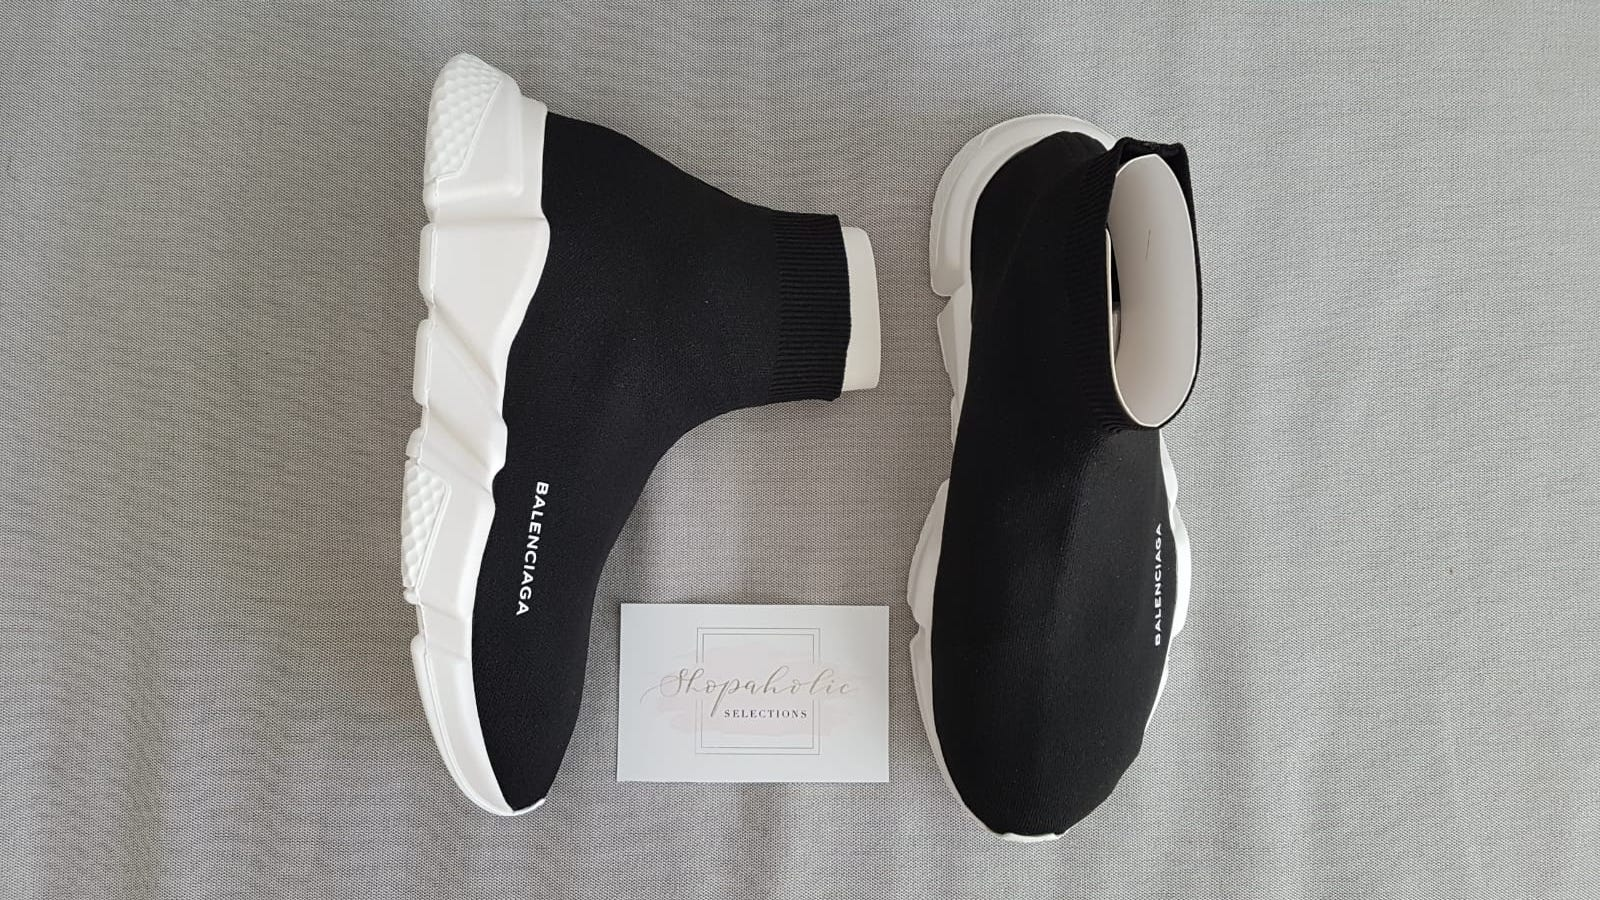 d3dad8f14016 Balenciaga BALENCIAGA Balenciaga Speed Trainer Black White STYLE 458653 -W05G0-1000 Size 10 - Hi-Top Sneakers for Sale - Grailed